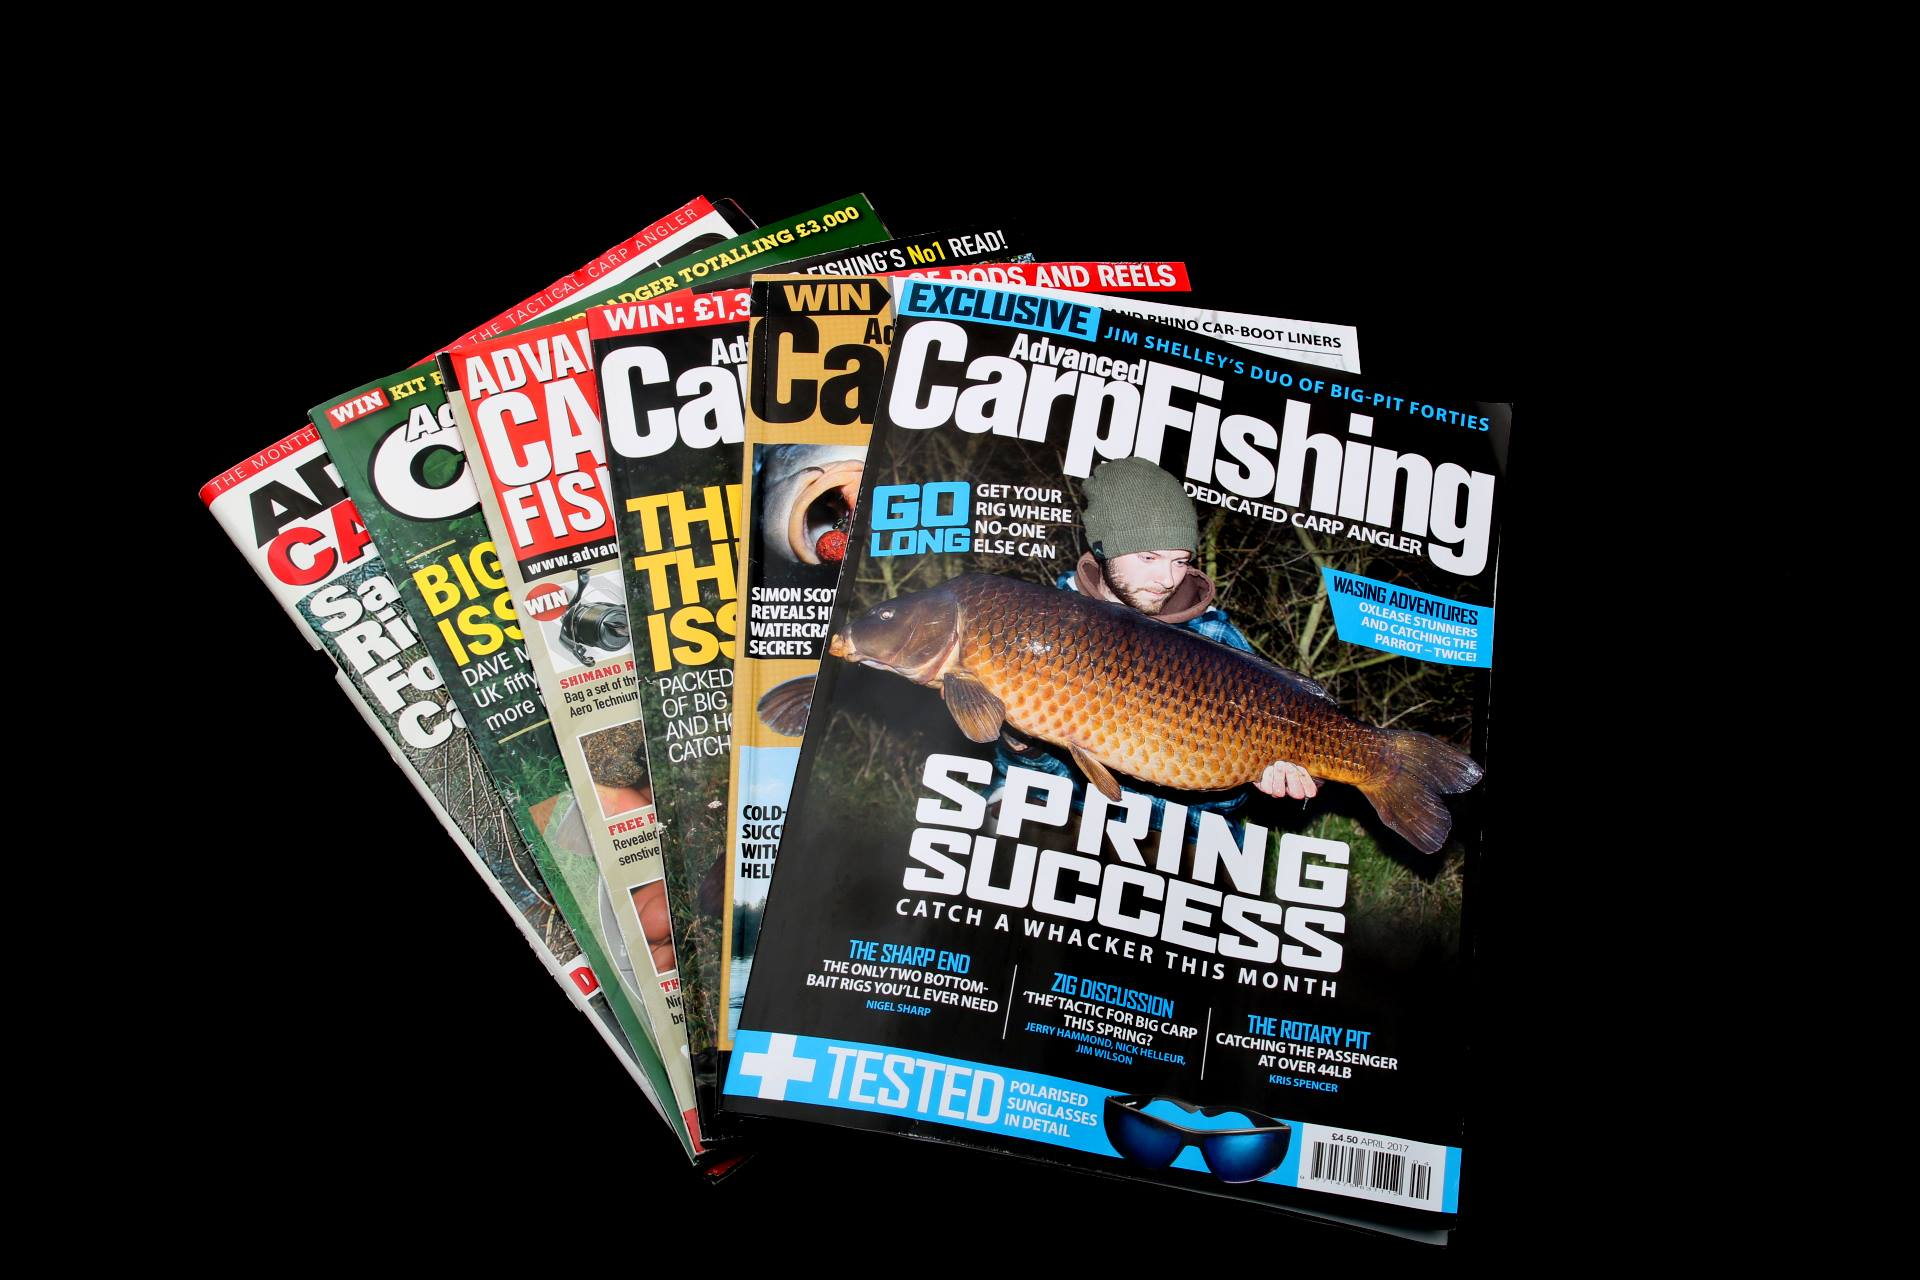 Advanced Carp Fishing calling it quits